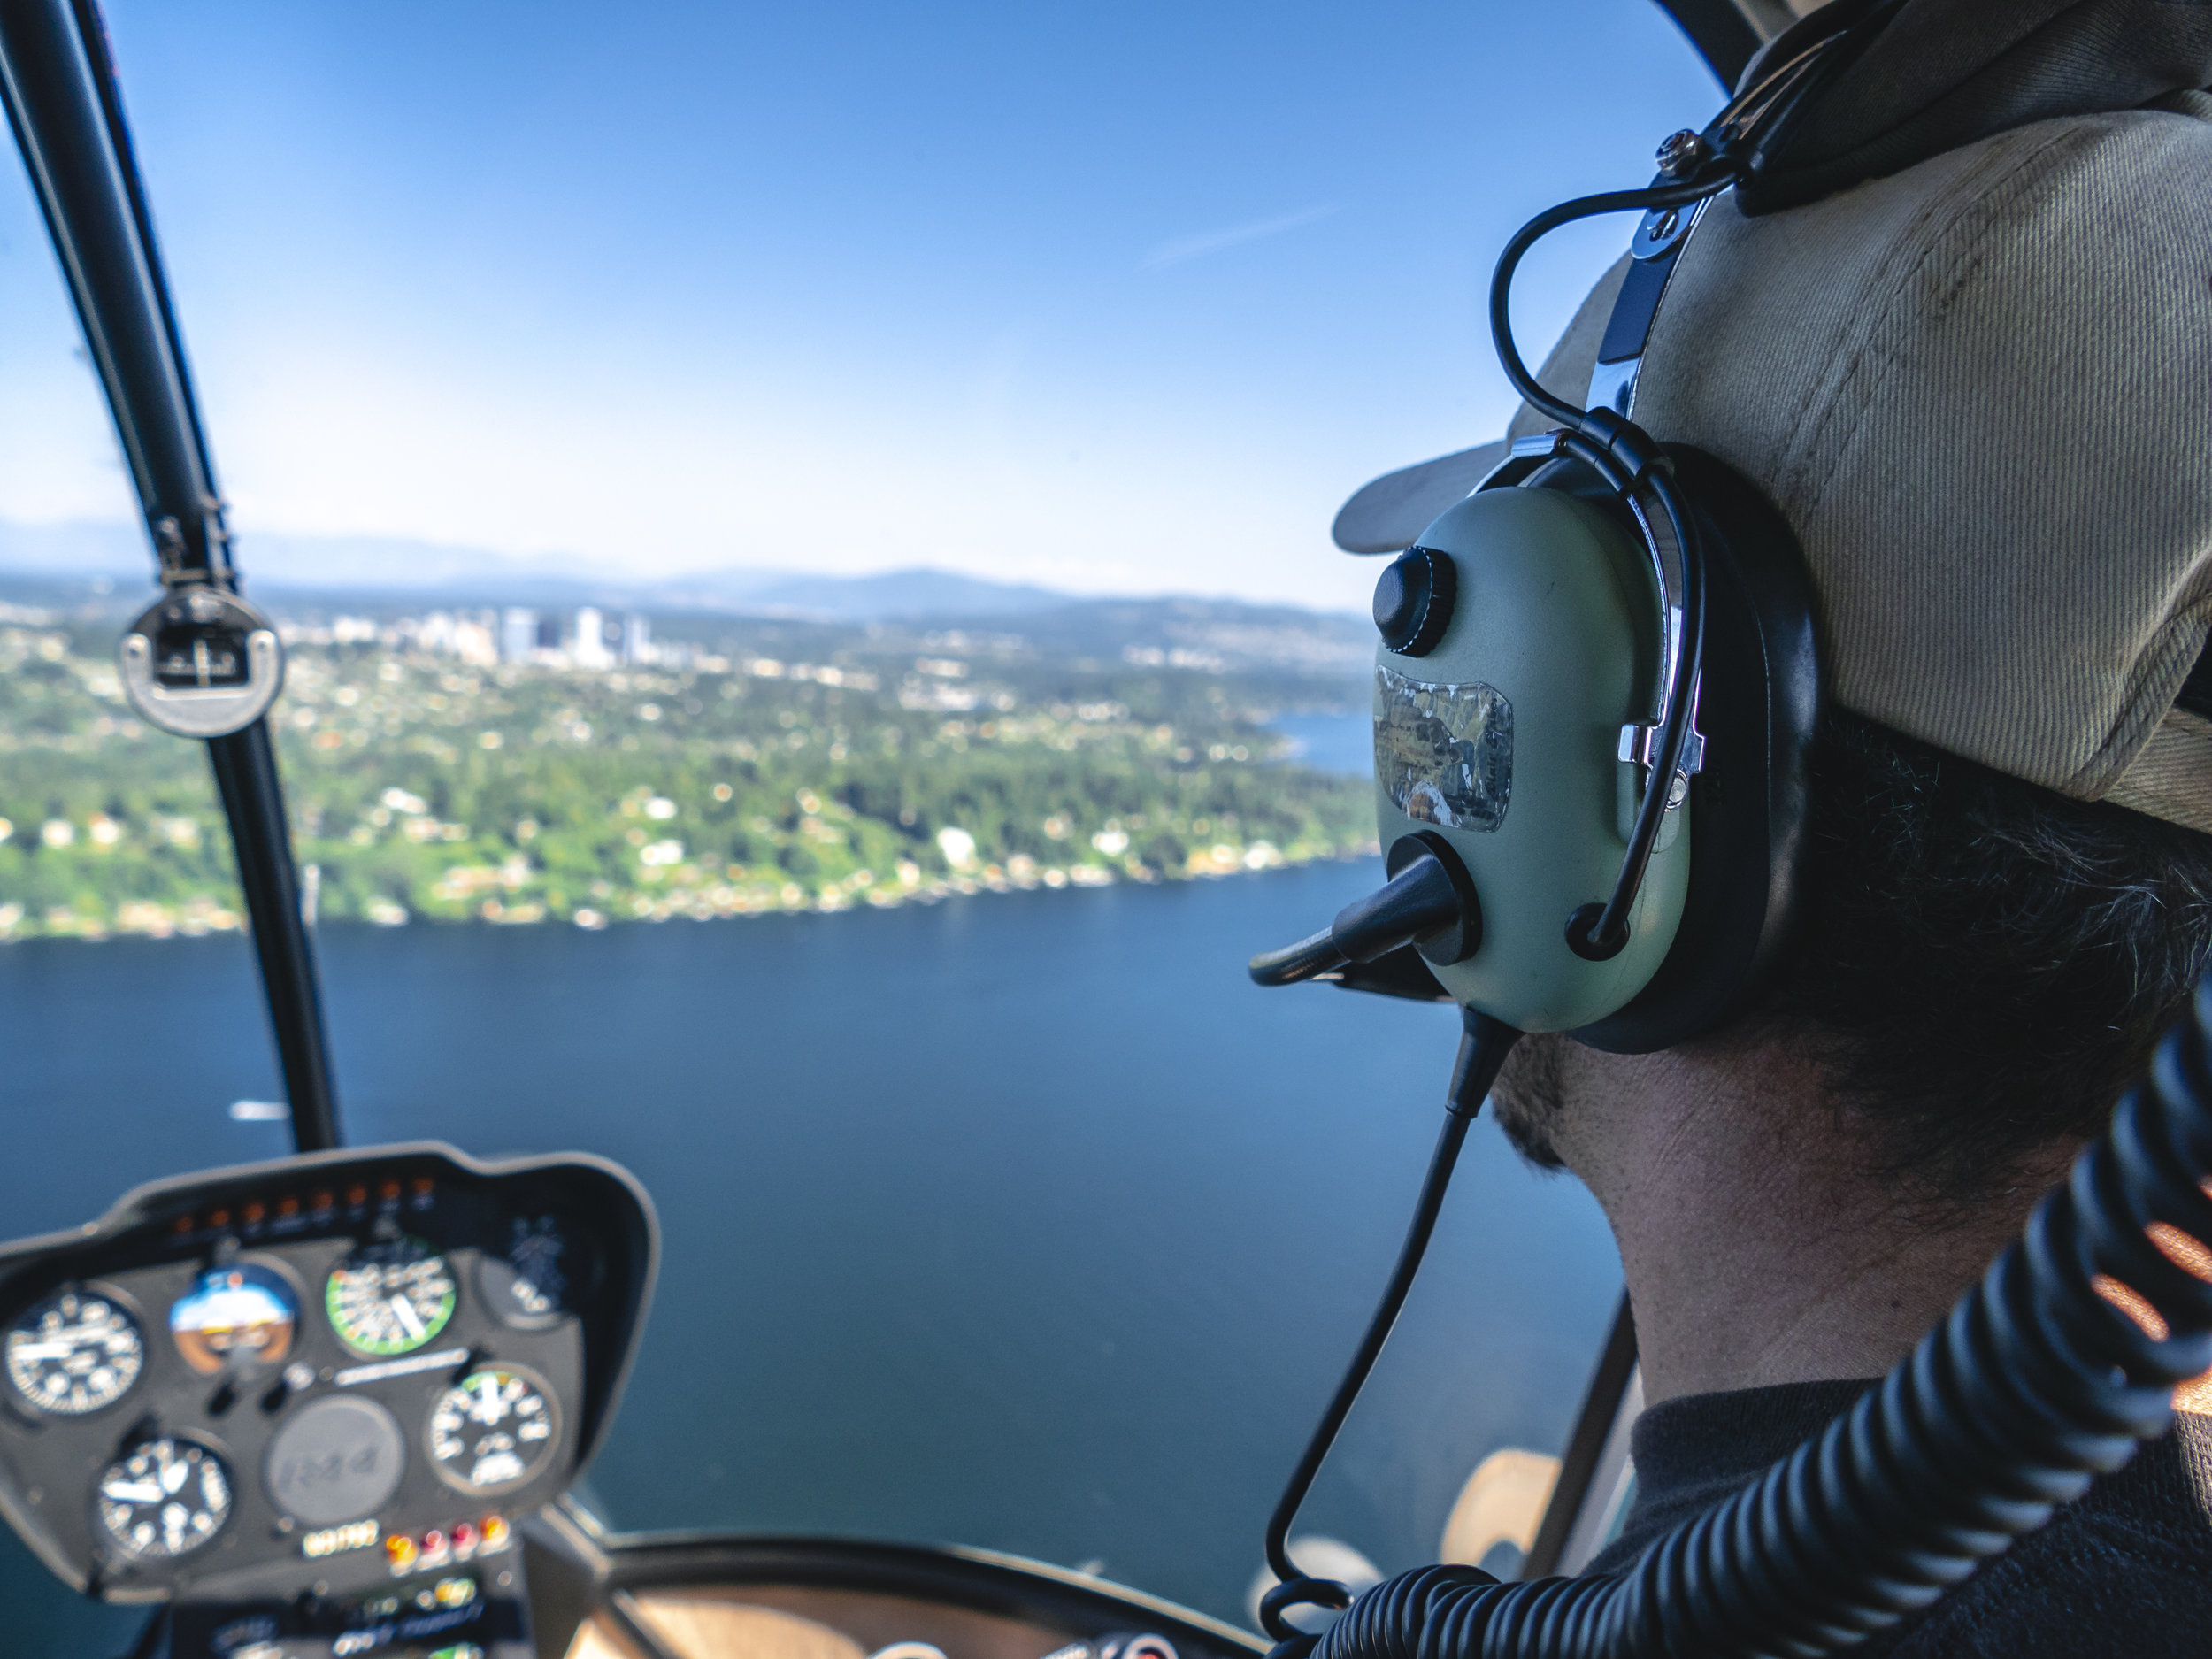 Helicopter_Pilot_Over_the_Shoulder_View_Flying_Above_Water.jpg